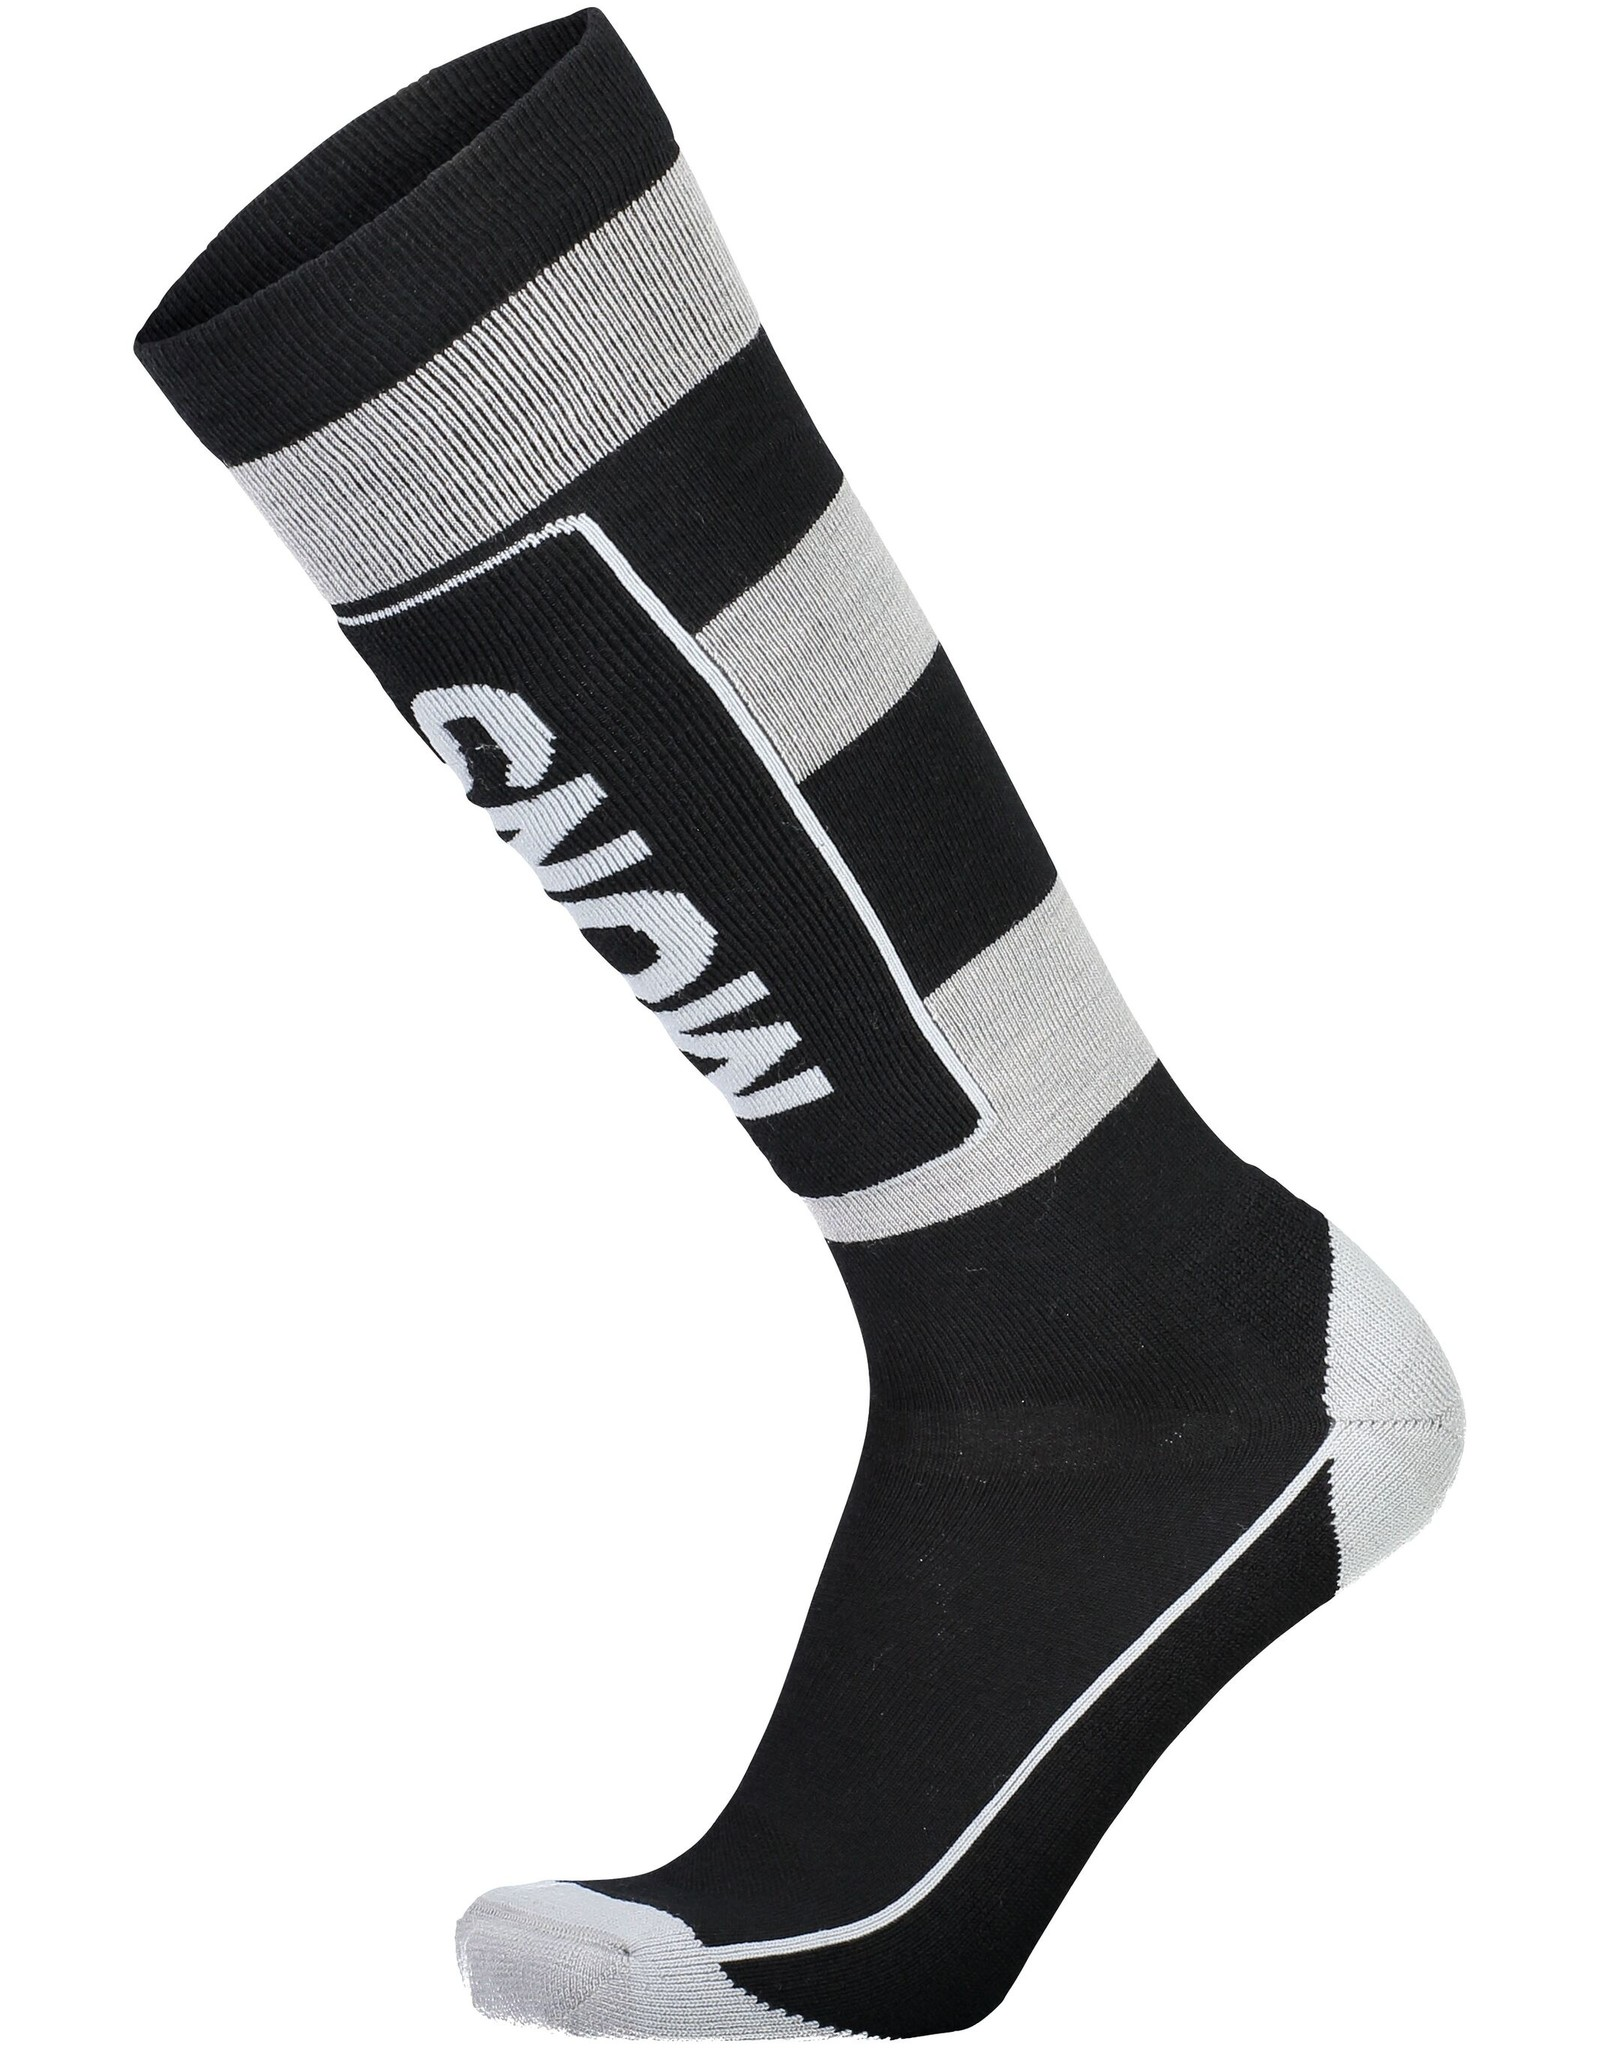 Mons Royale Mons Royale Mons Tech Cushion Sock- Men's -W2020